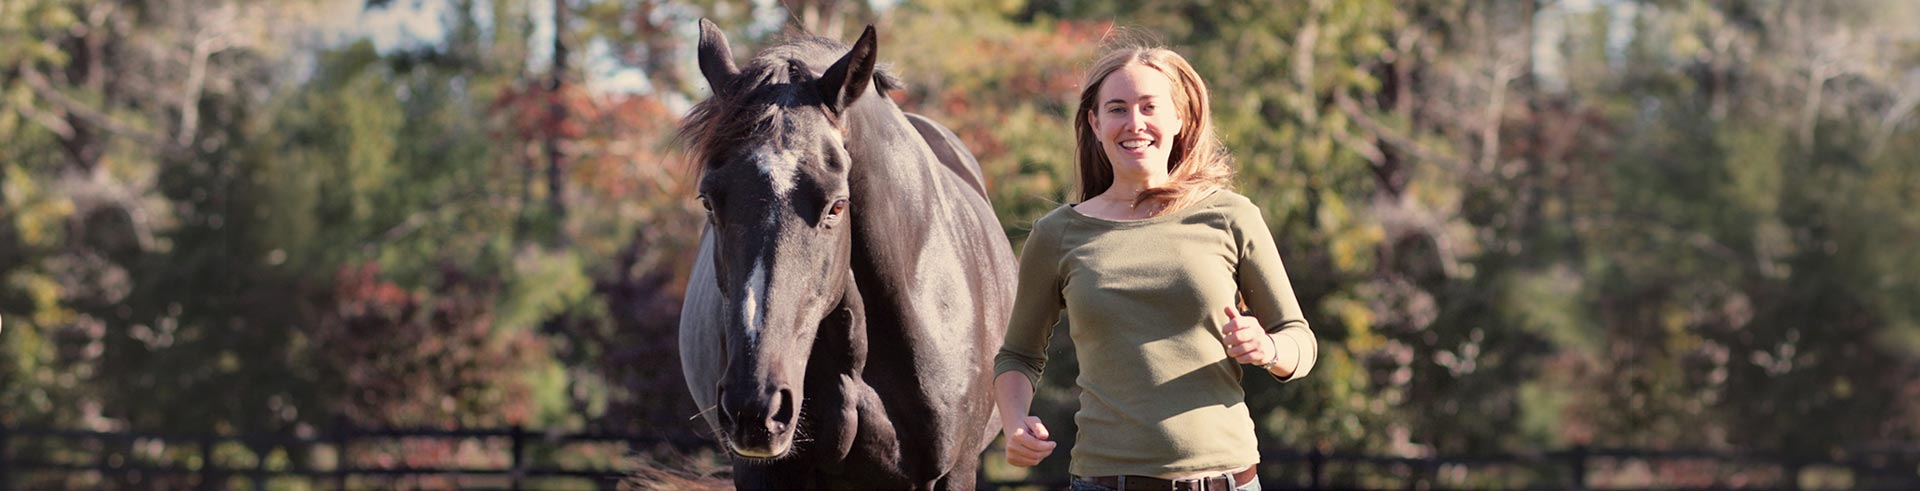 Emily with horse